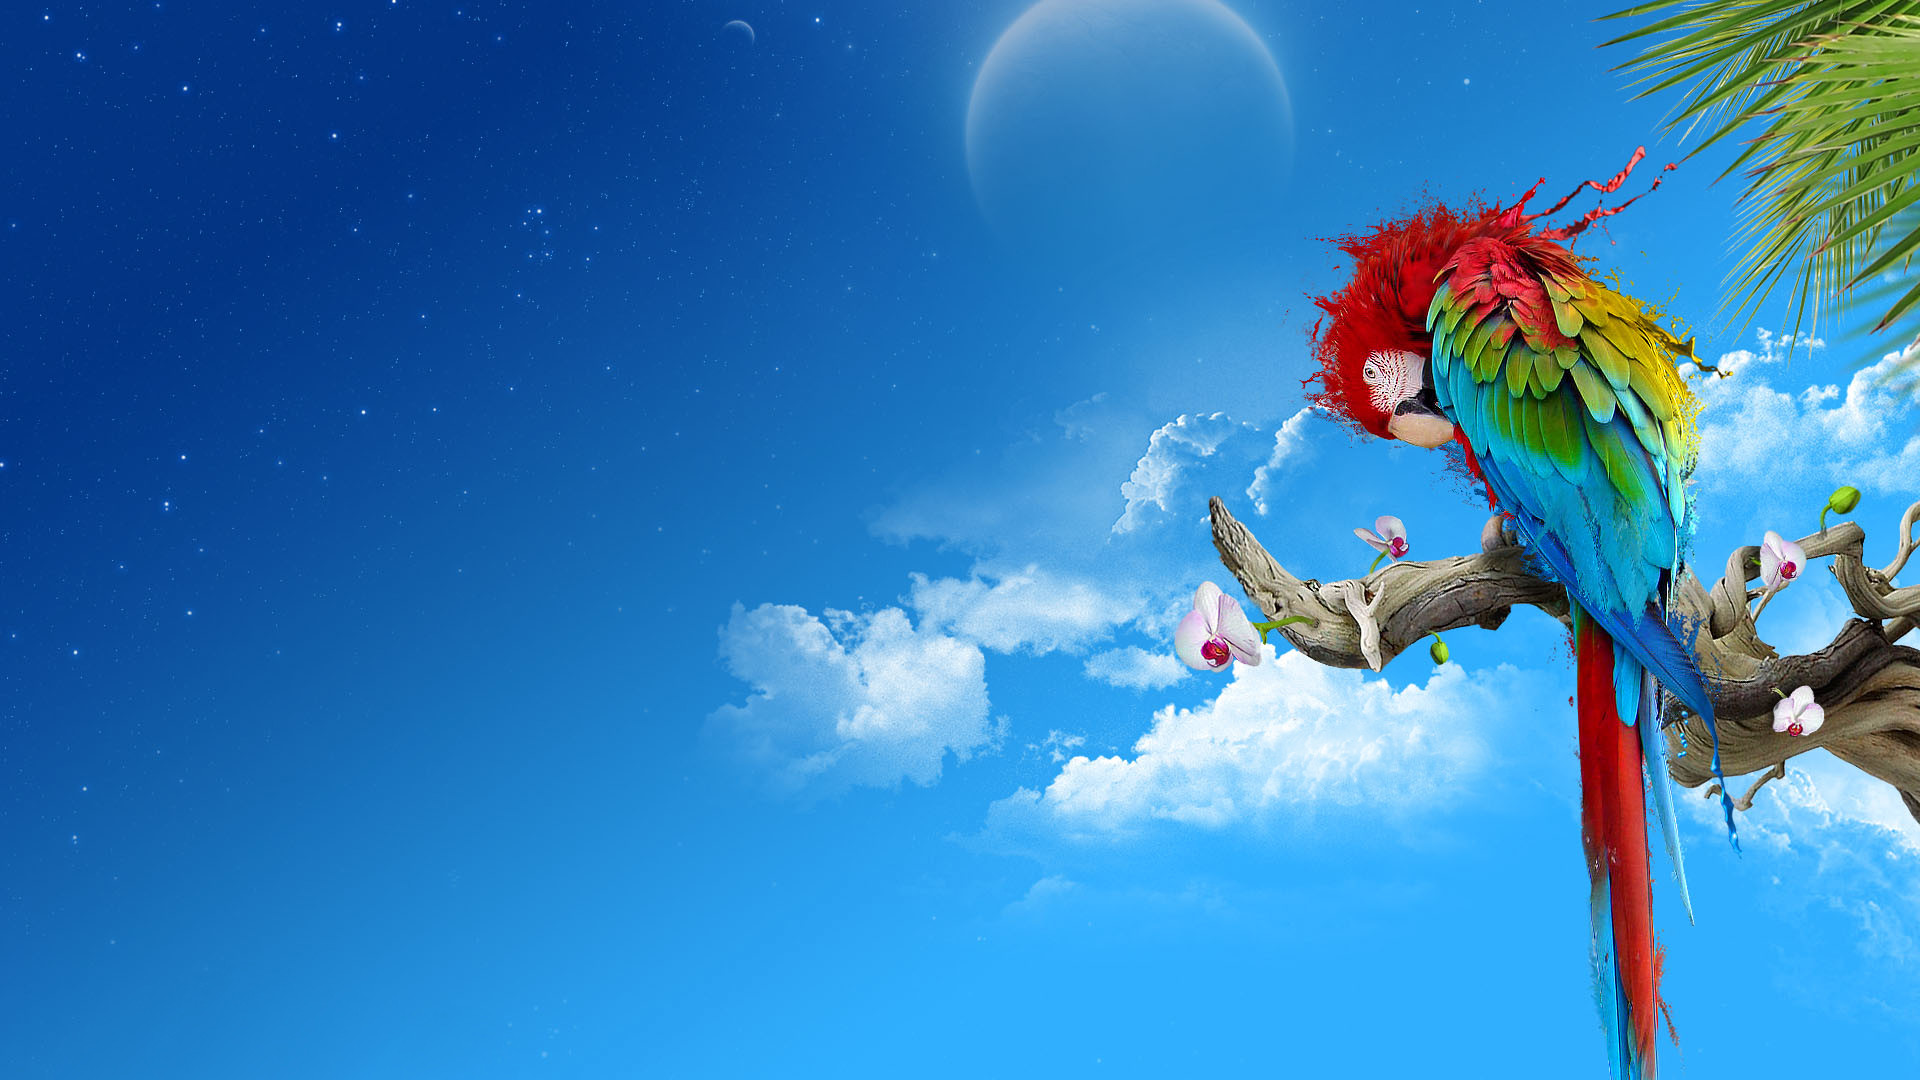 parrot abstract hd wallpapers